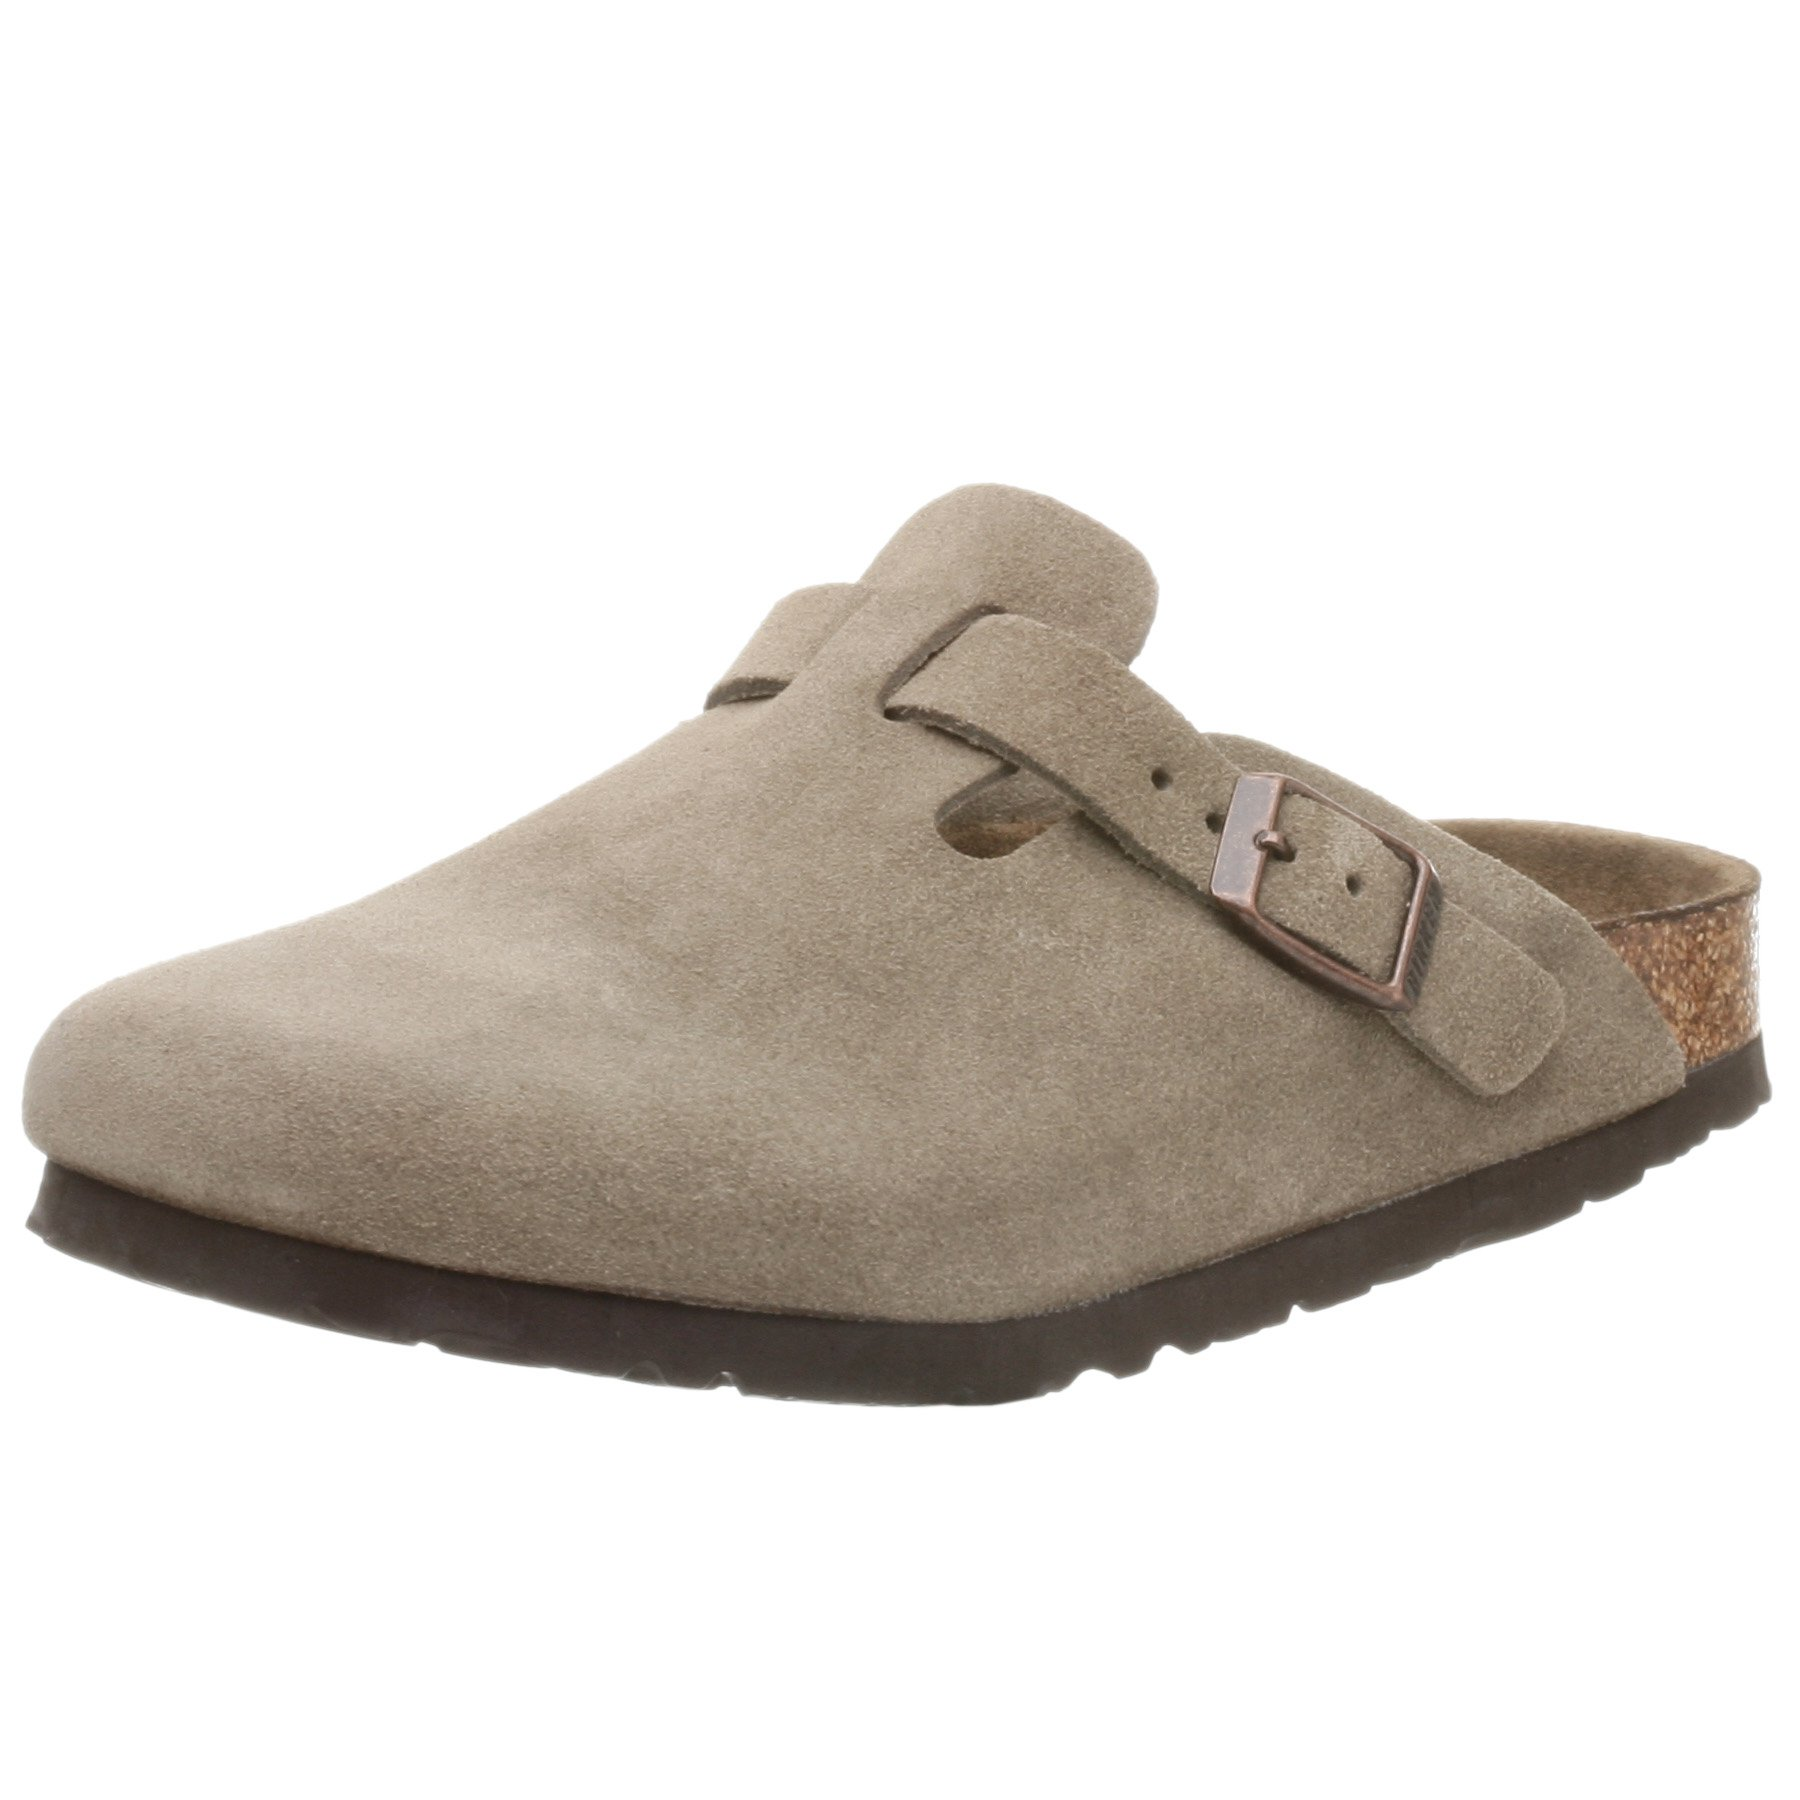 Birkenstock Toddler/Little Kid Boston Suede Clog,Taupe Suede,31 Narrow EU